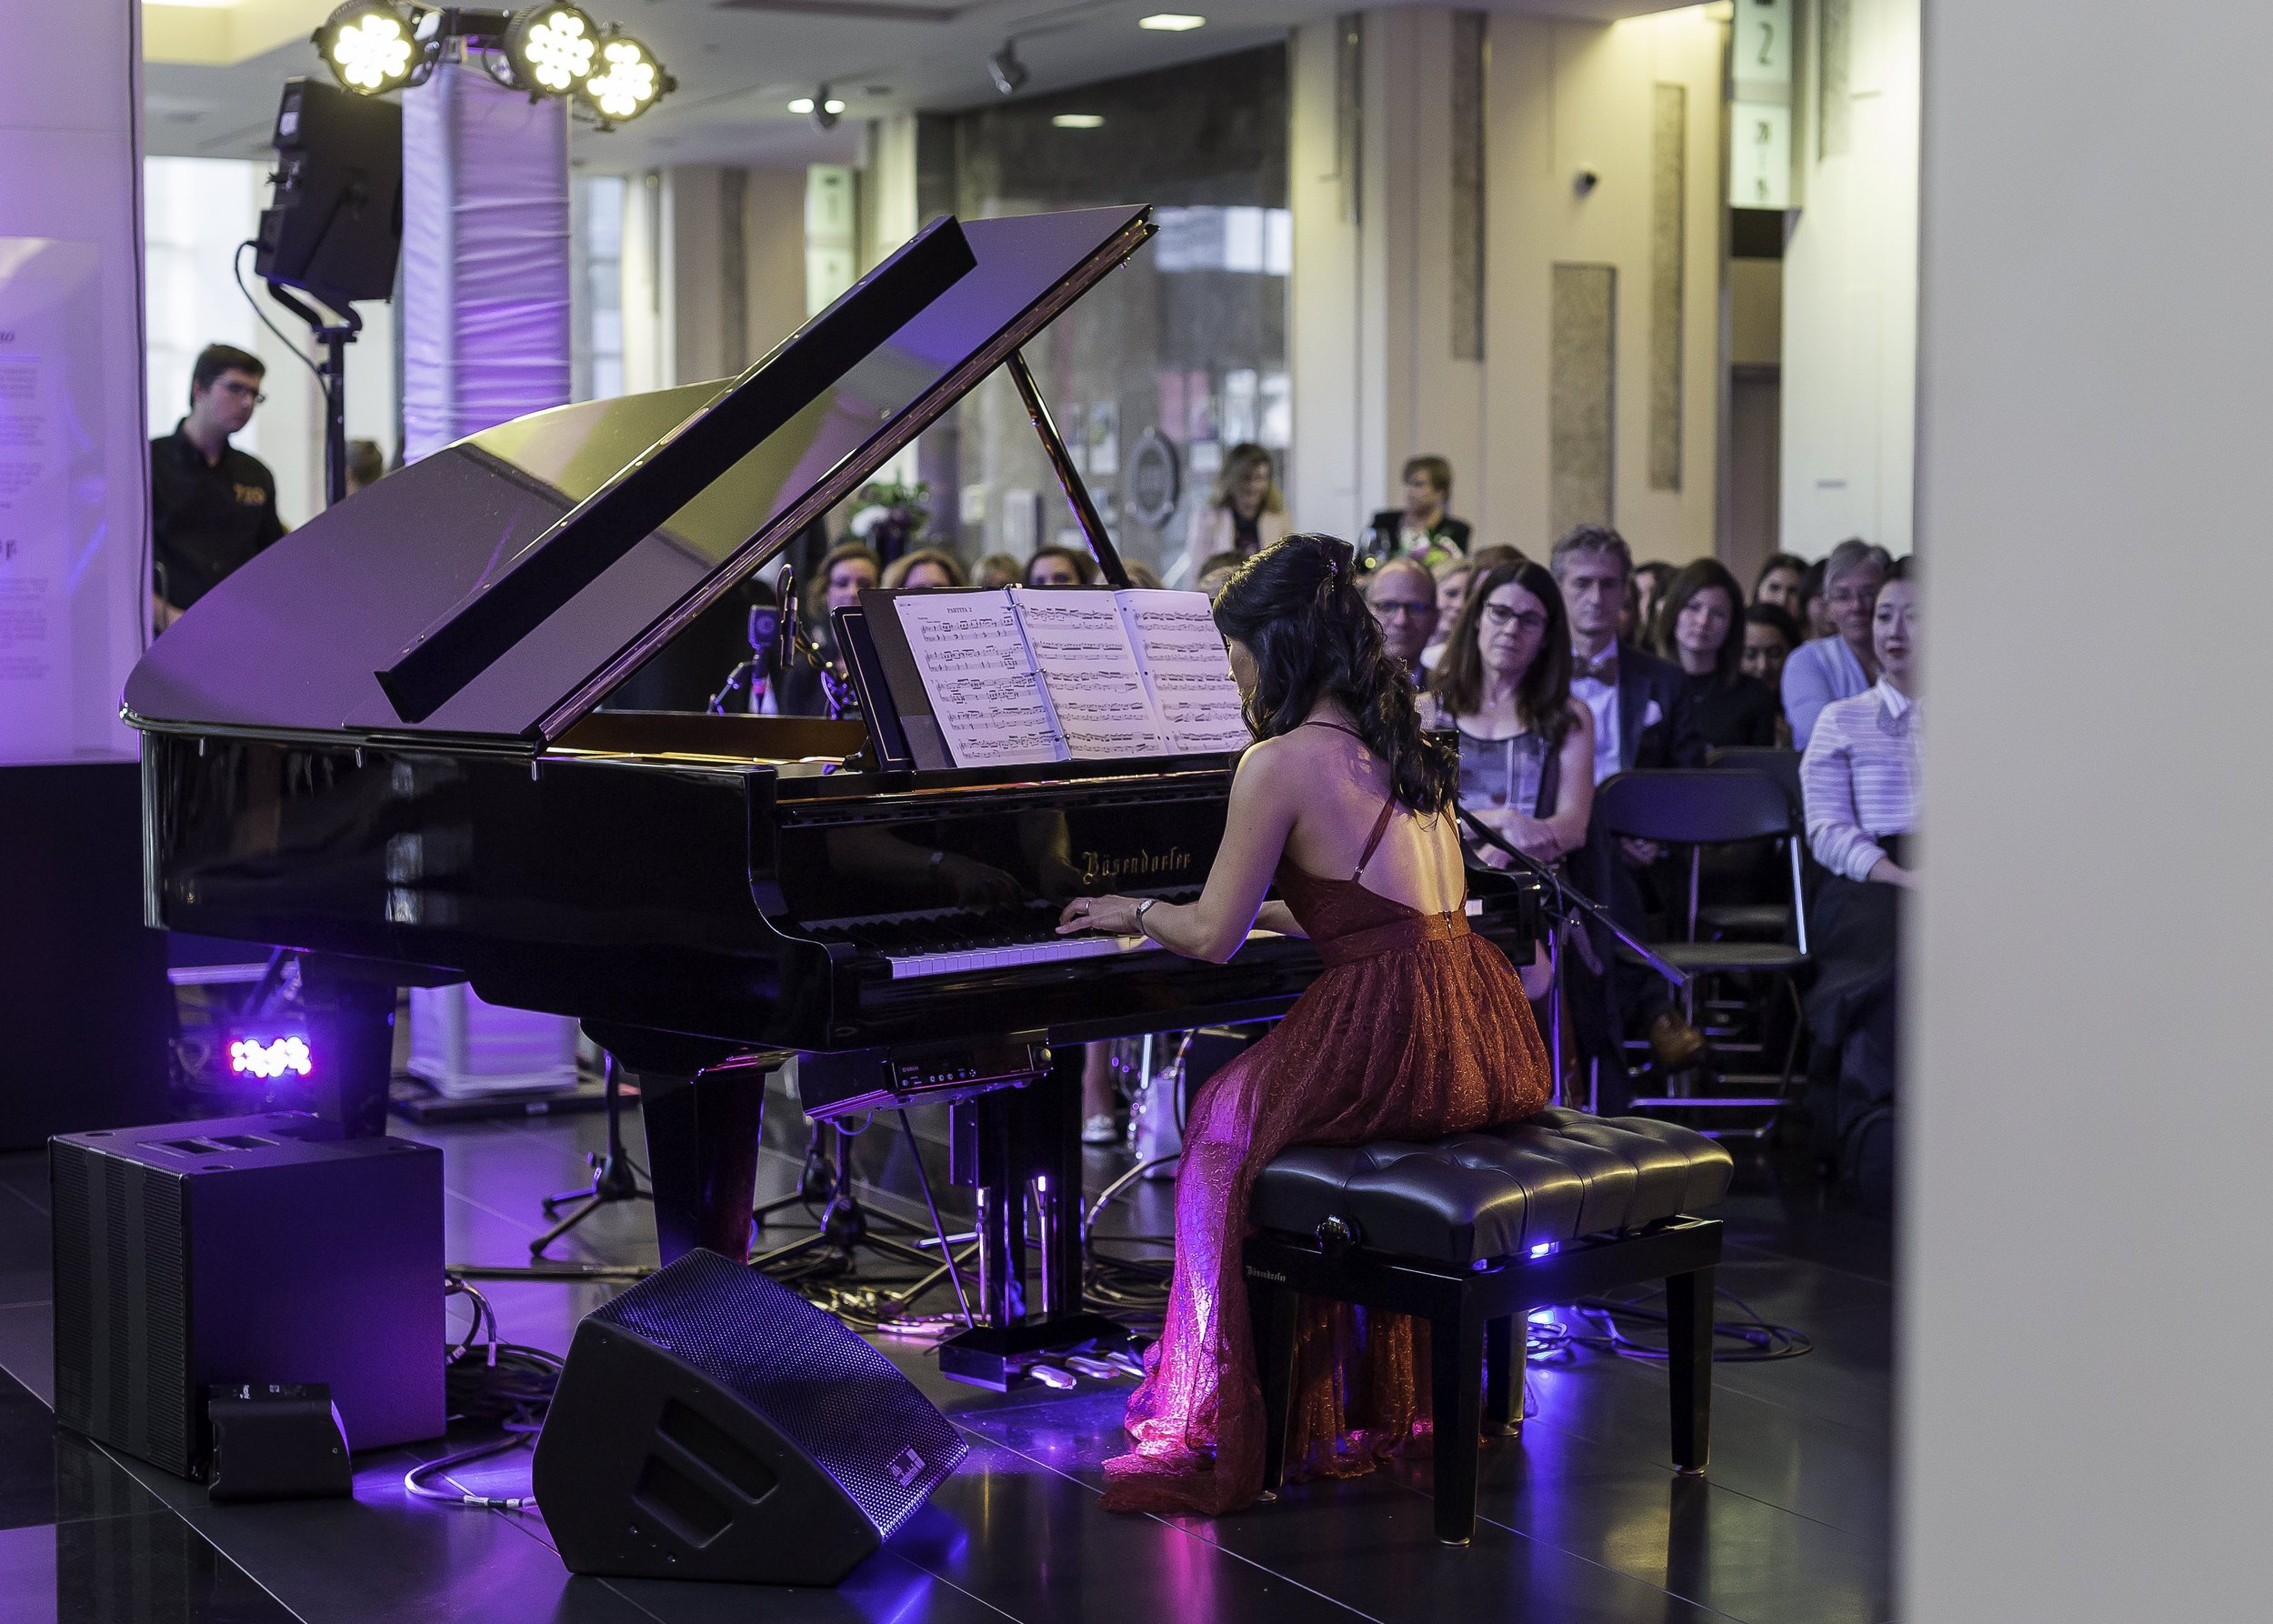 Playing the Oscar Peterson Bosendorfer grand piano, at EPCOR Tower